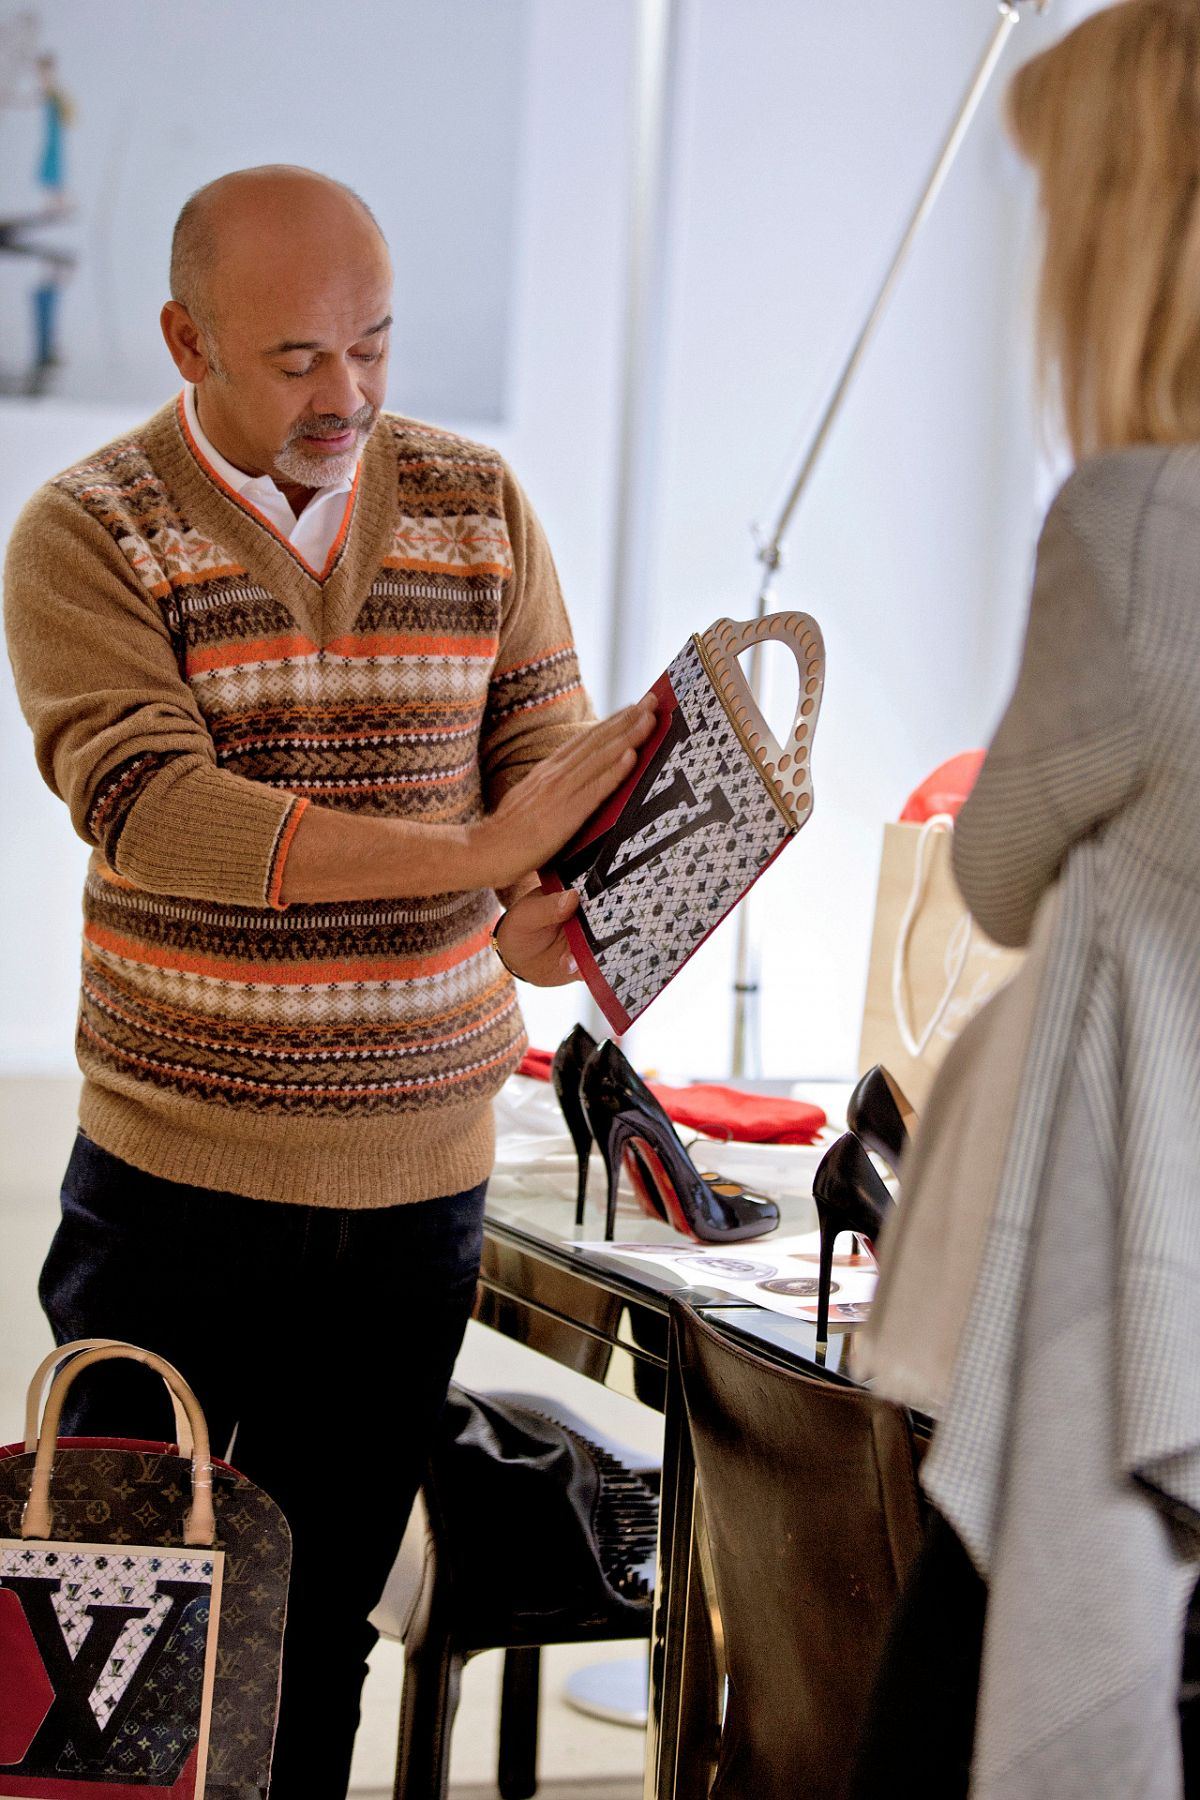 a0fe2763cdd News - Christian Louboutin Online - Celebrating Monogram with Louis Vuitton